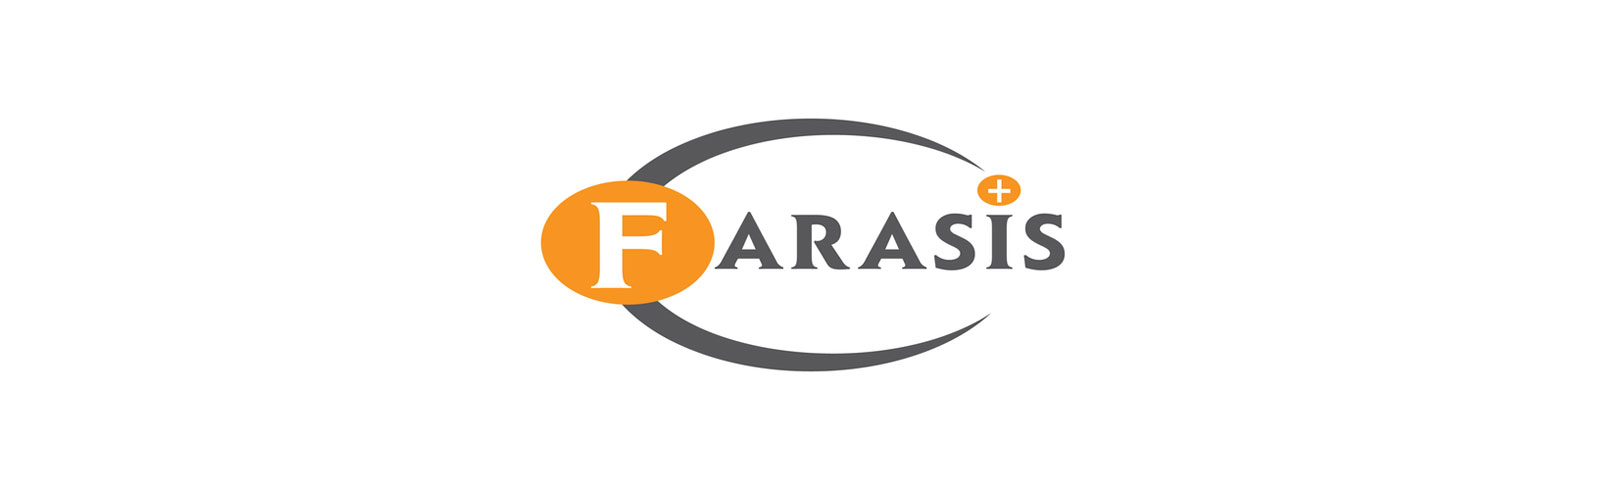 US-based Farasis will manufacture batteries for EVs in Germany